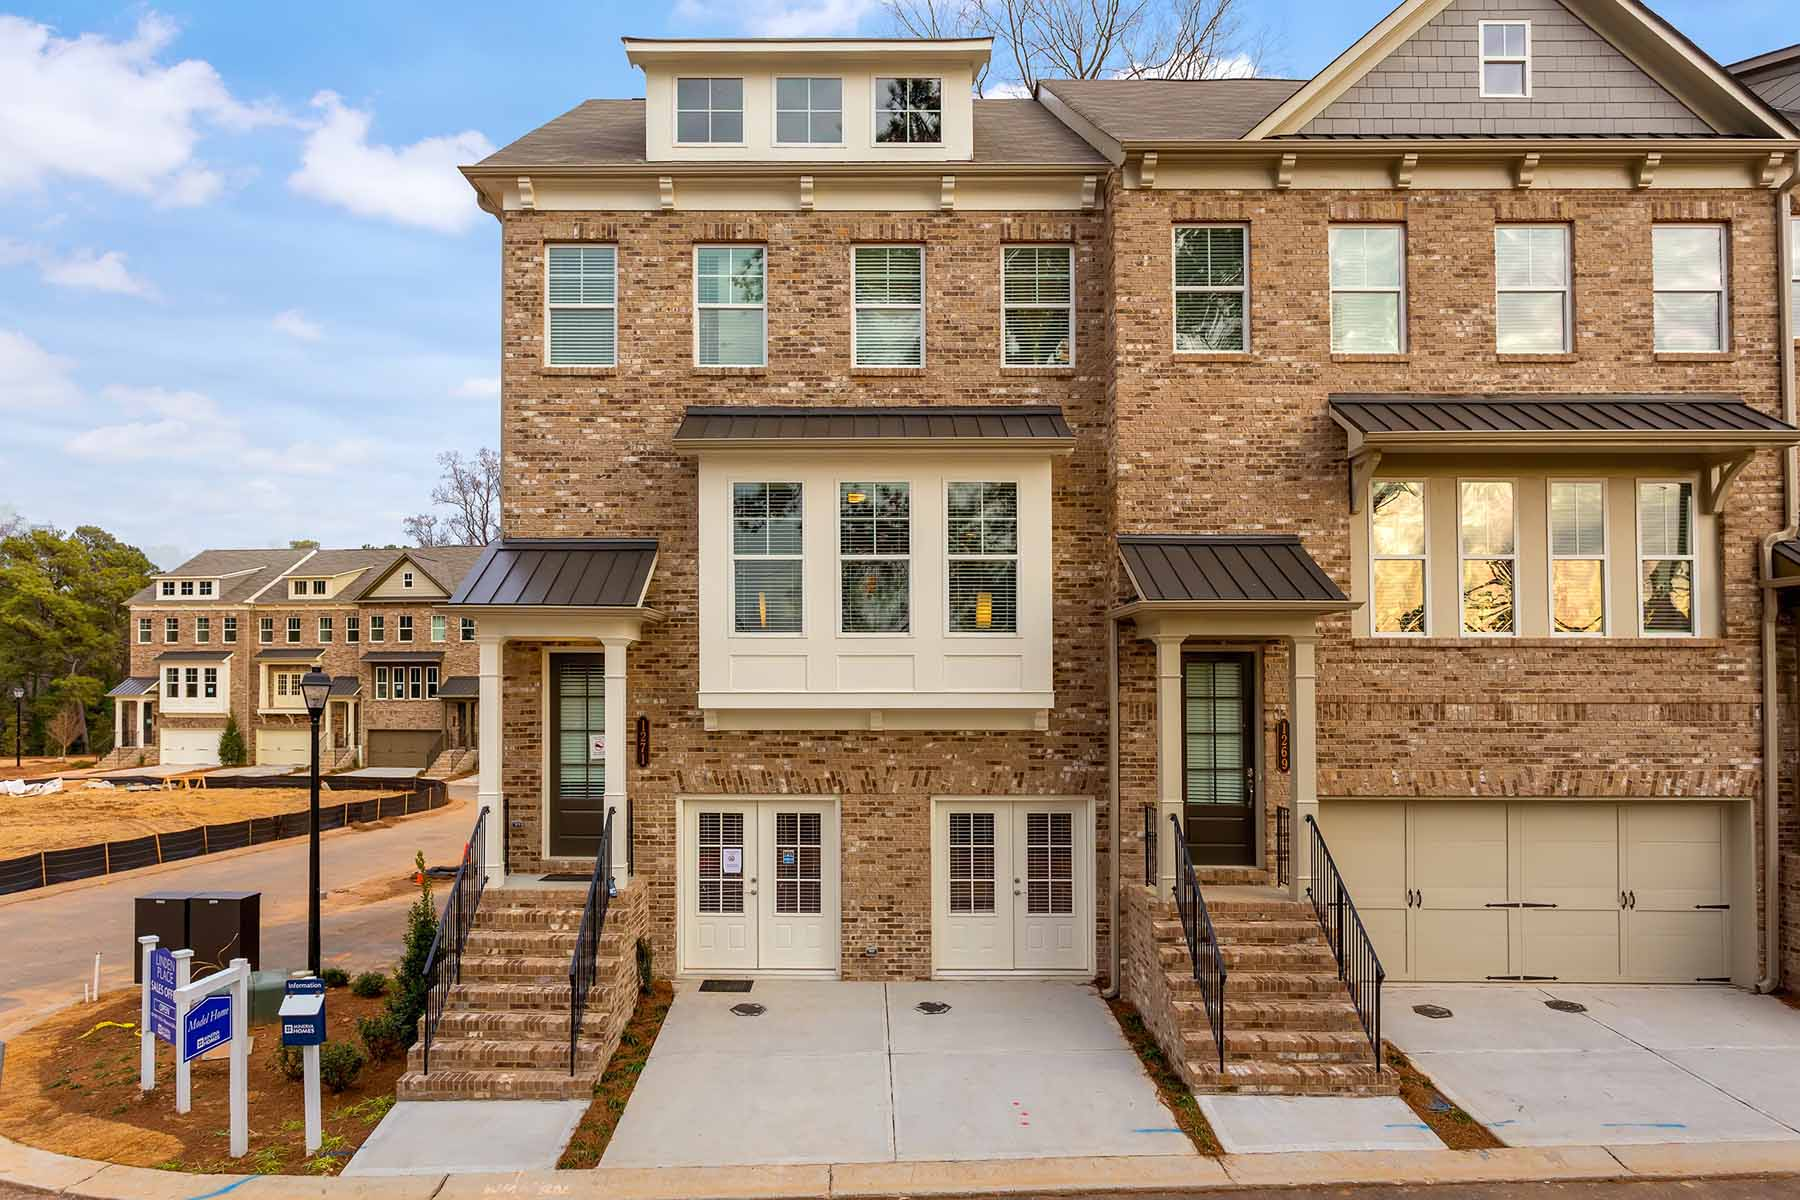 Nhà phố vì Bán tại Linden Place offers unmatched convenience, lifestyle and luxury townhome living! 1263 Linden Court No. 3 Atlanta, Georgia 30329 Hoa Kỳ